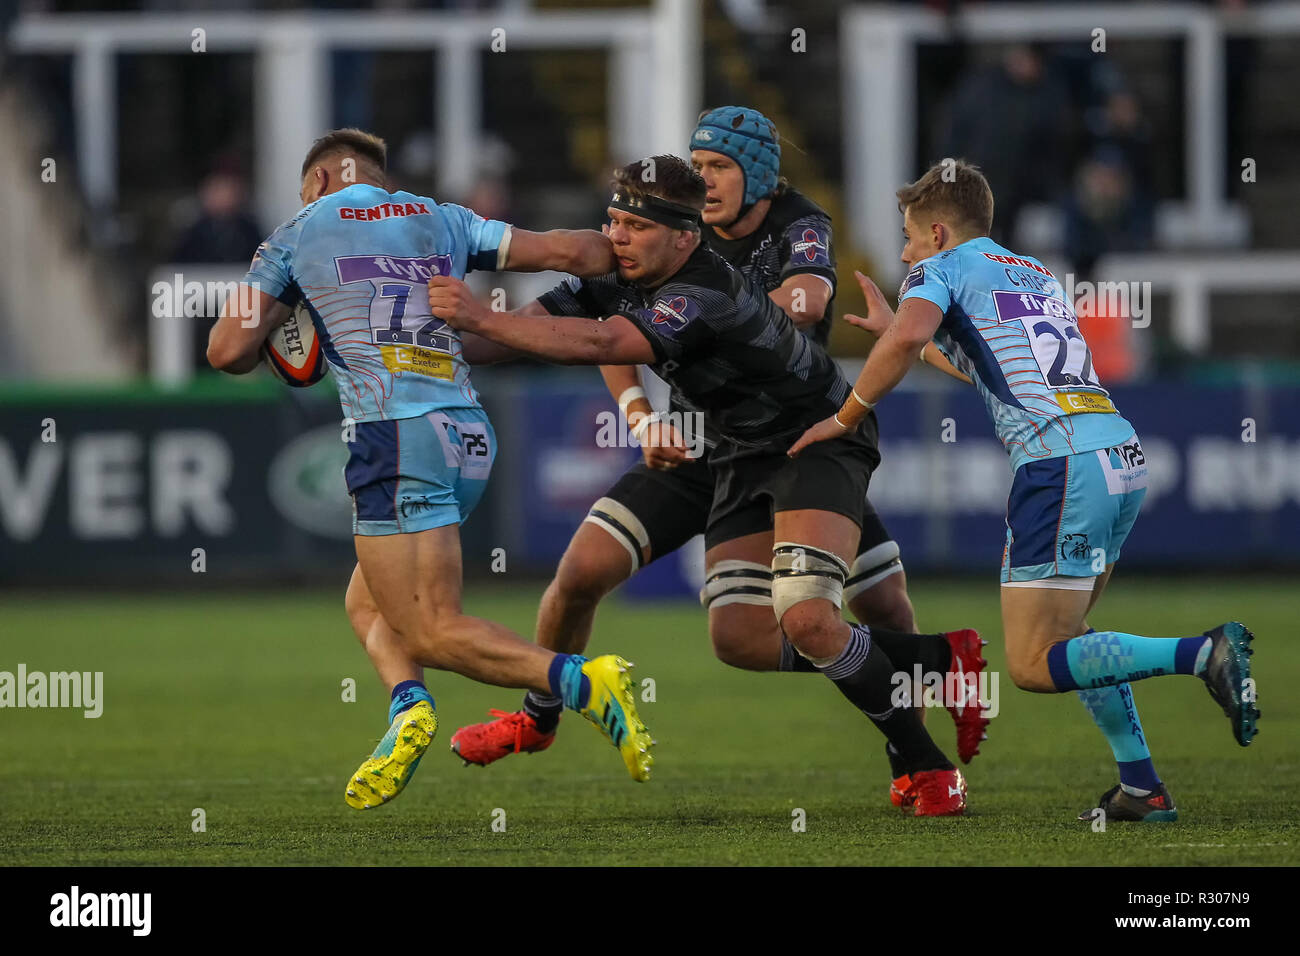 NEWCASTLE UPON TYNE. 28th October 2018  Callum Chick of Newcastle Falcons tries to hang on to Sam Hill during the Premiership Cup match between Newcastle Falcons and Exeter Chiefs at Kingston Park, Newcastle upon Tyne on Sunday 28th October 2018. ©MI News & Sport Ltd  | Alamy Live News - Stock Image